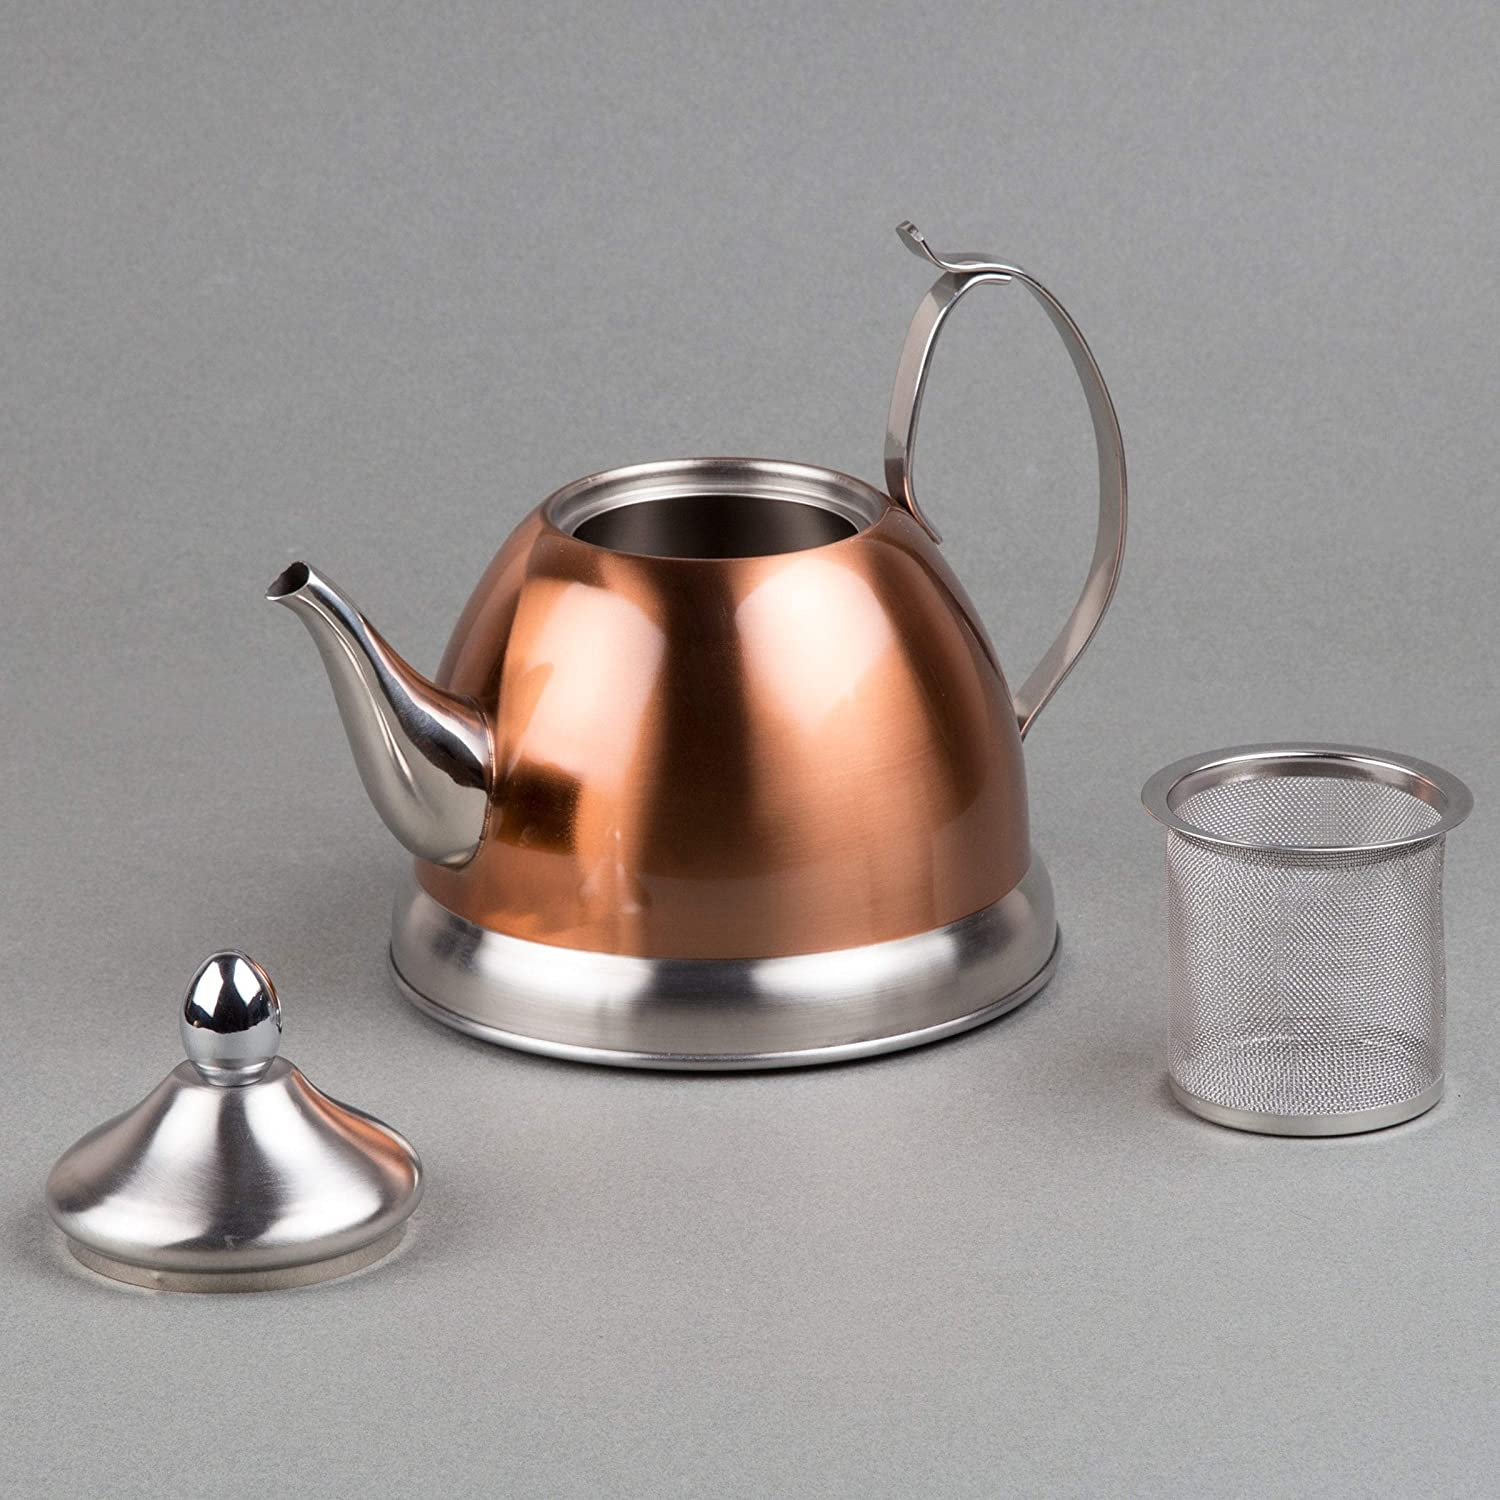 1 0 Qt Stainless Steel Copper Tea Kettle Removable Infuser Basket